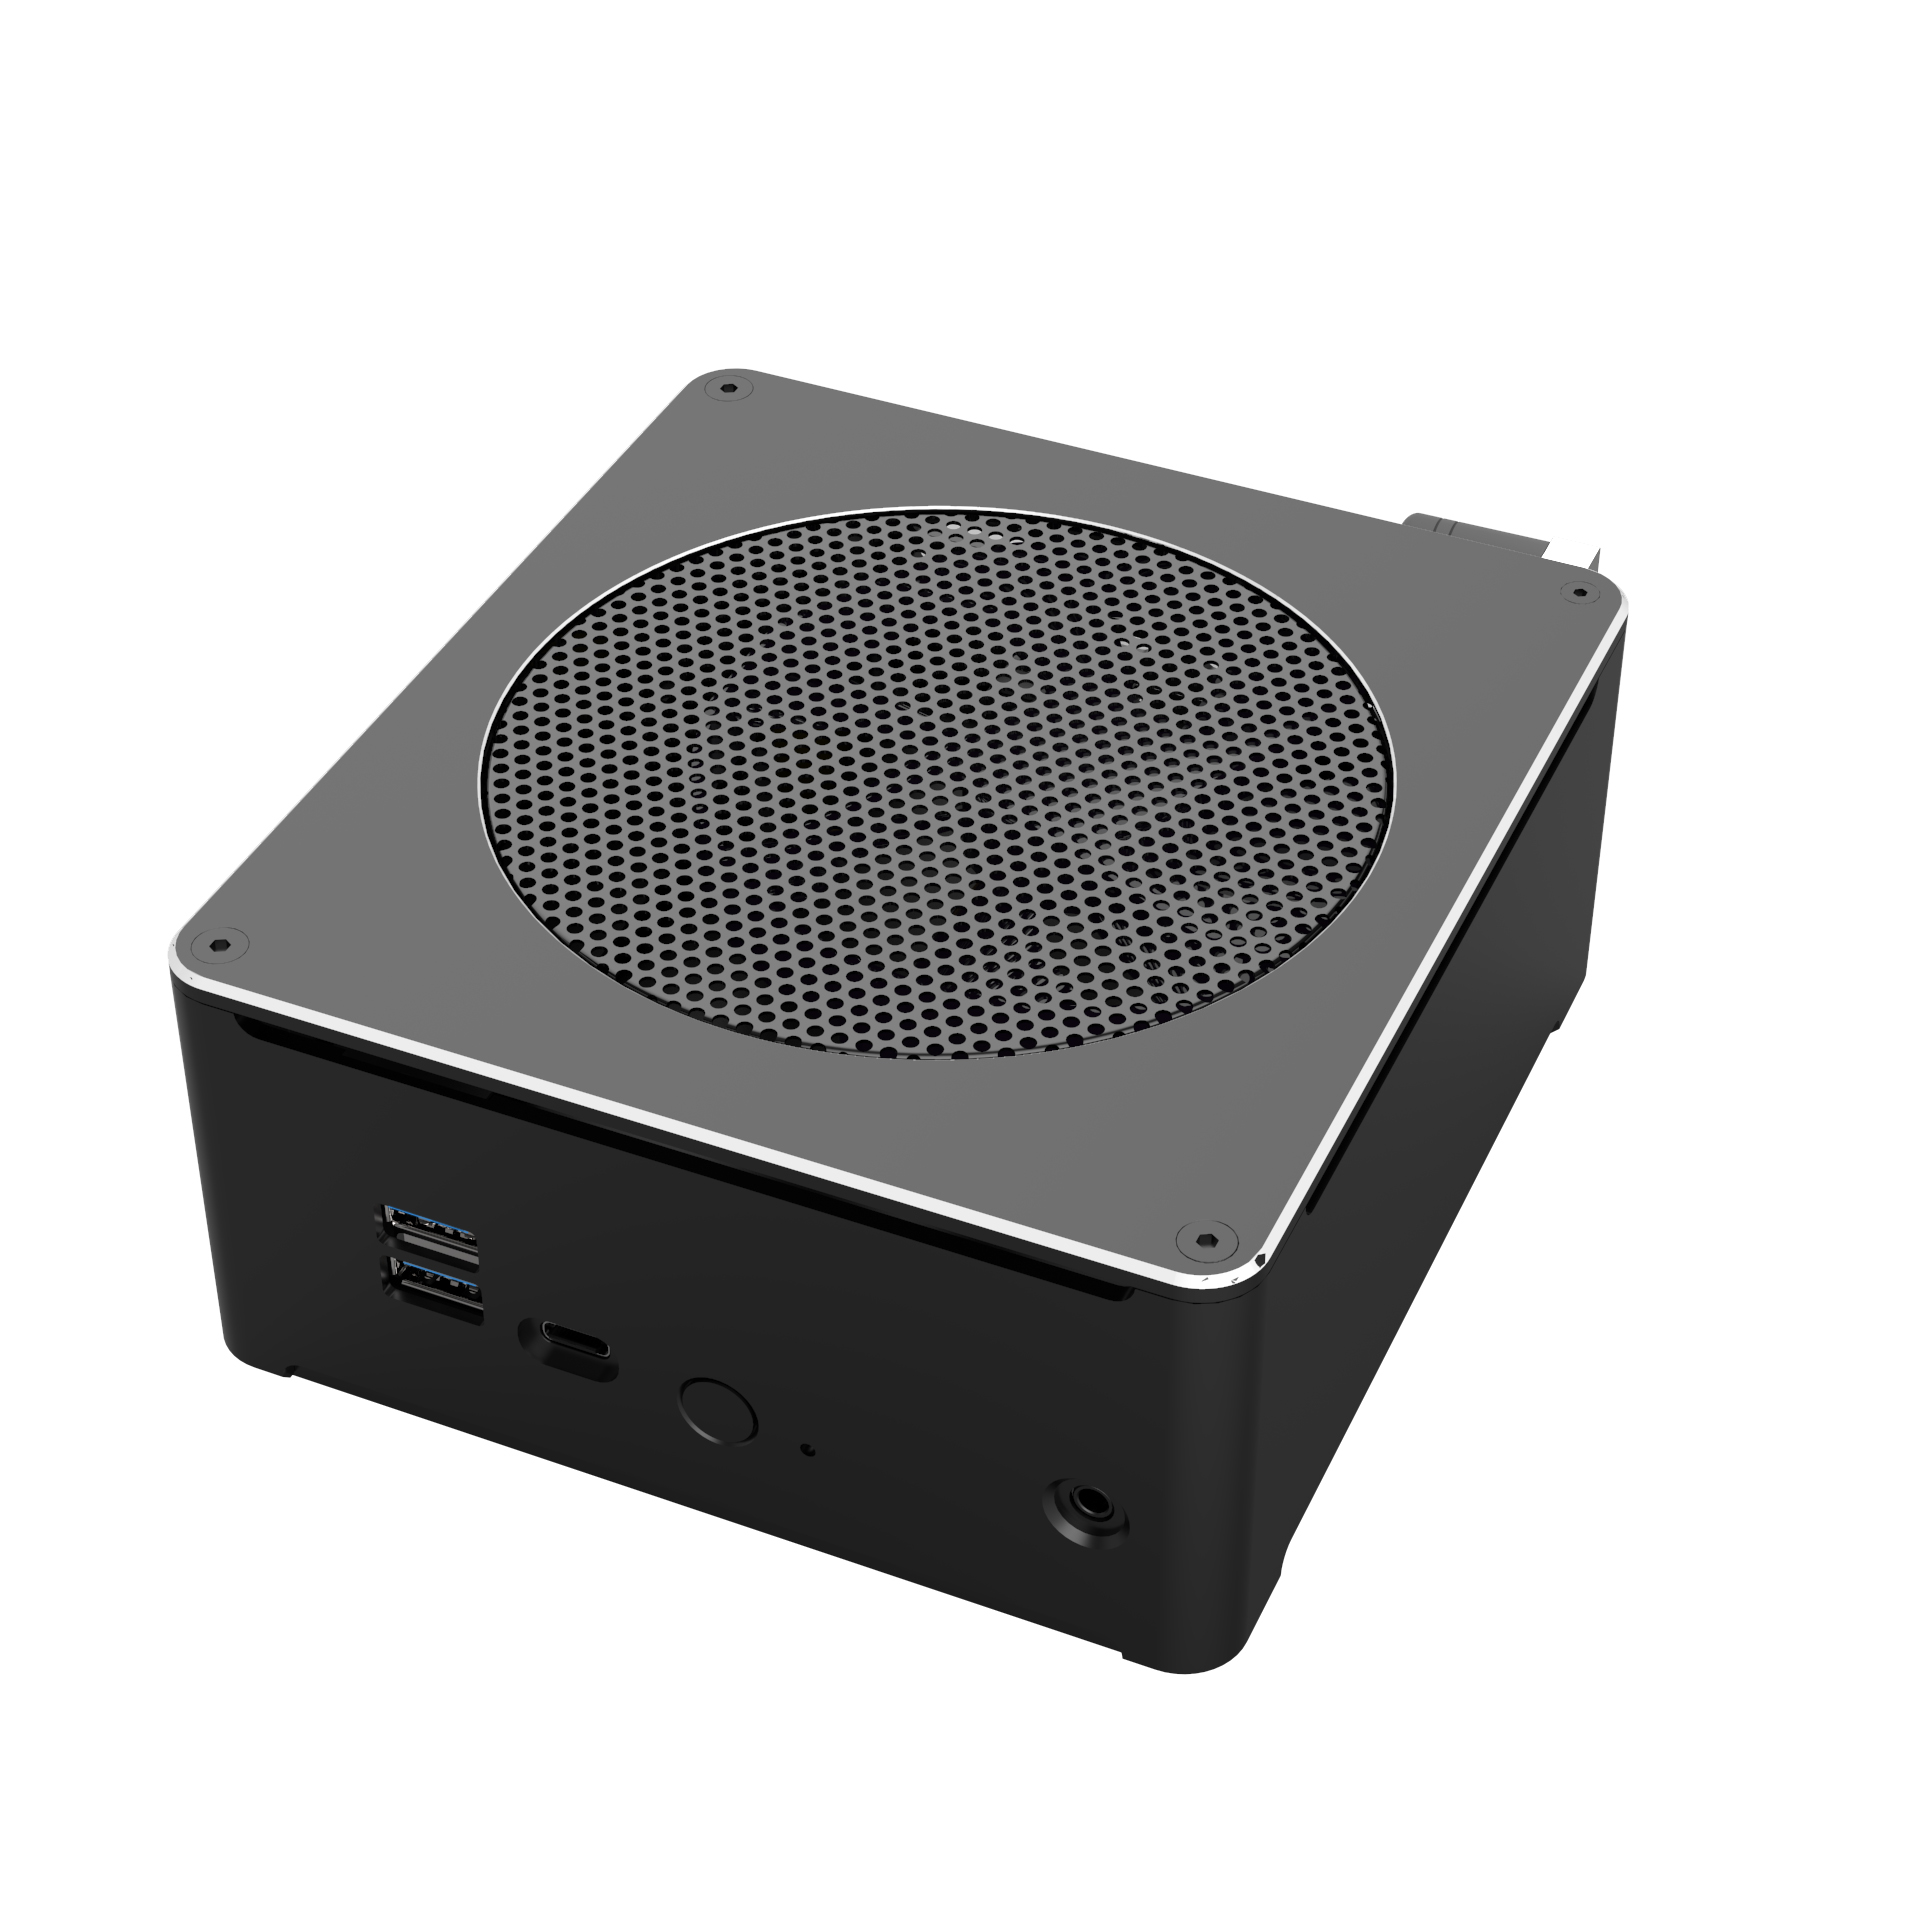 Topton Intel oyun Mini PC Xeon E-2176M dizüstü bilgisayar 2 * DDR4 64GB 2 * M.2 PCIE + 1*2.5 ''SATA Mini PC Win10 Pro HD DP AC WIFI